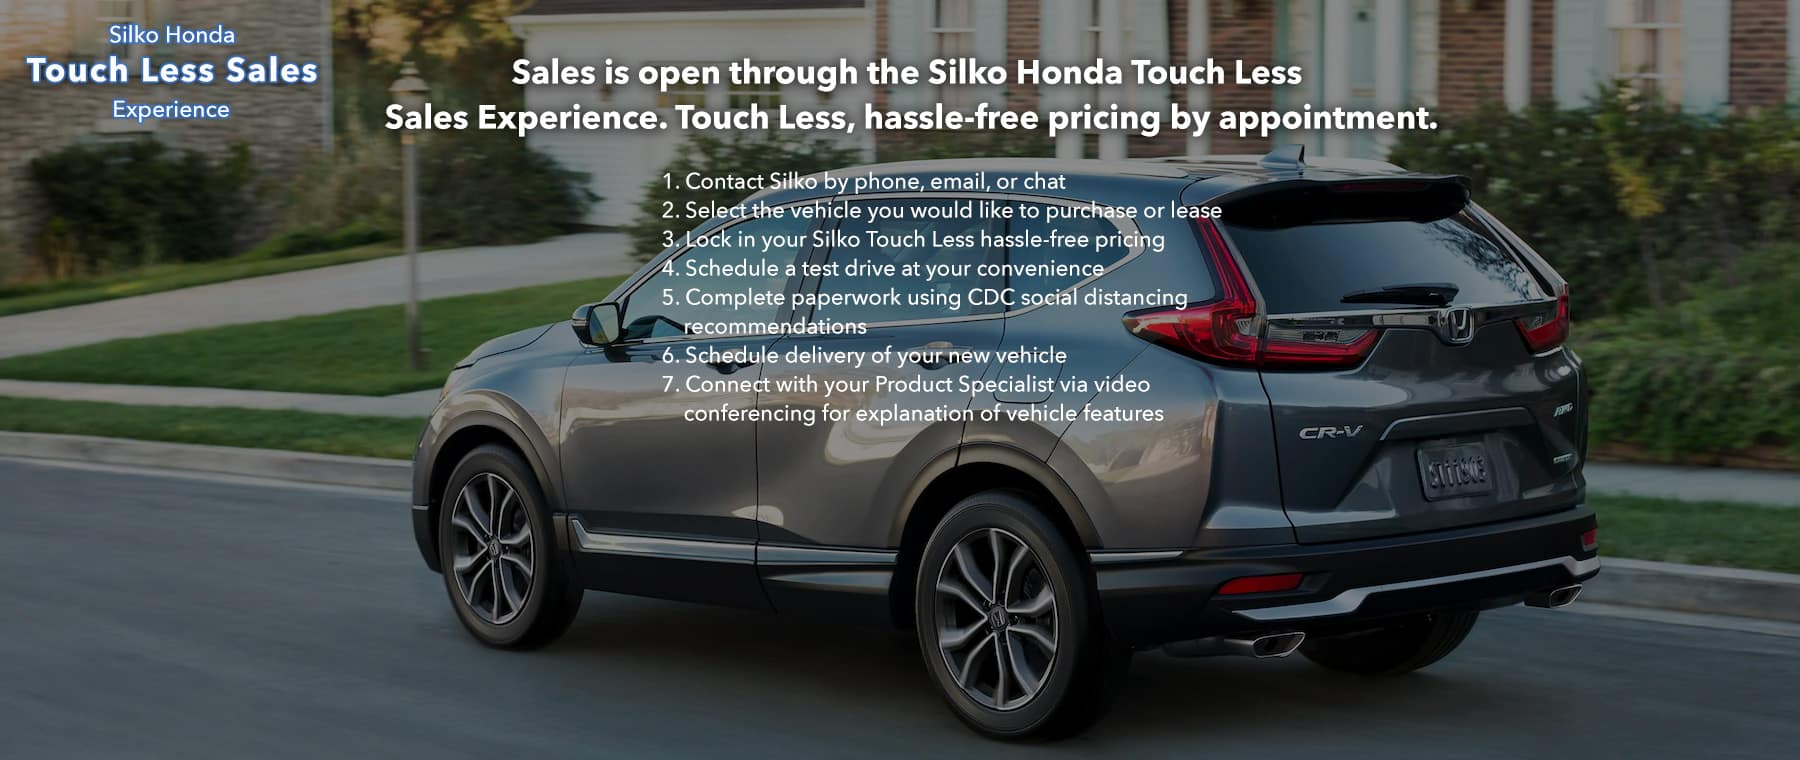 Silko Honda Touch Less Sales Experience